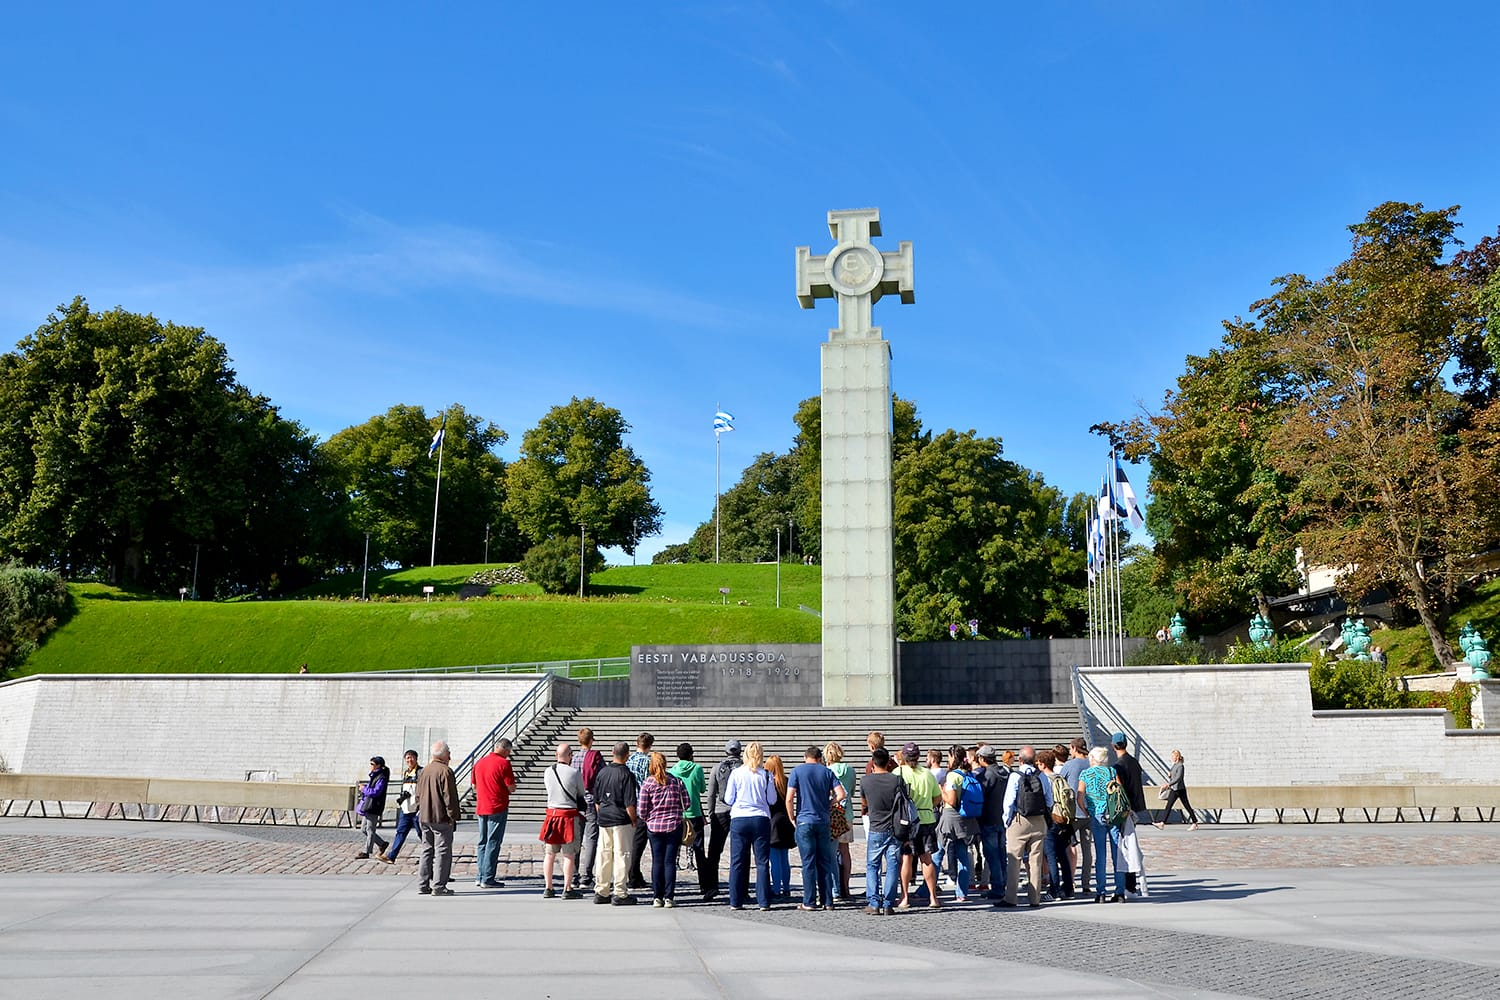 Tourists visiting Freedom Square, the War of Independence Victory Column in Tallinn, Estonia